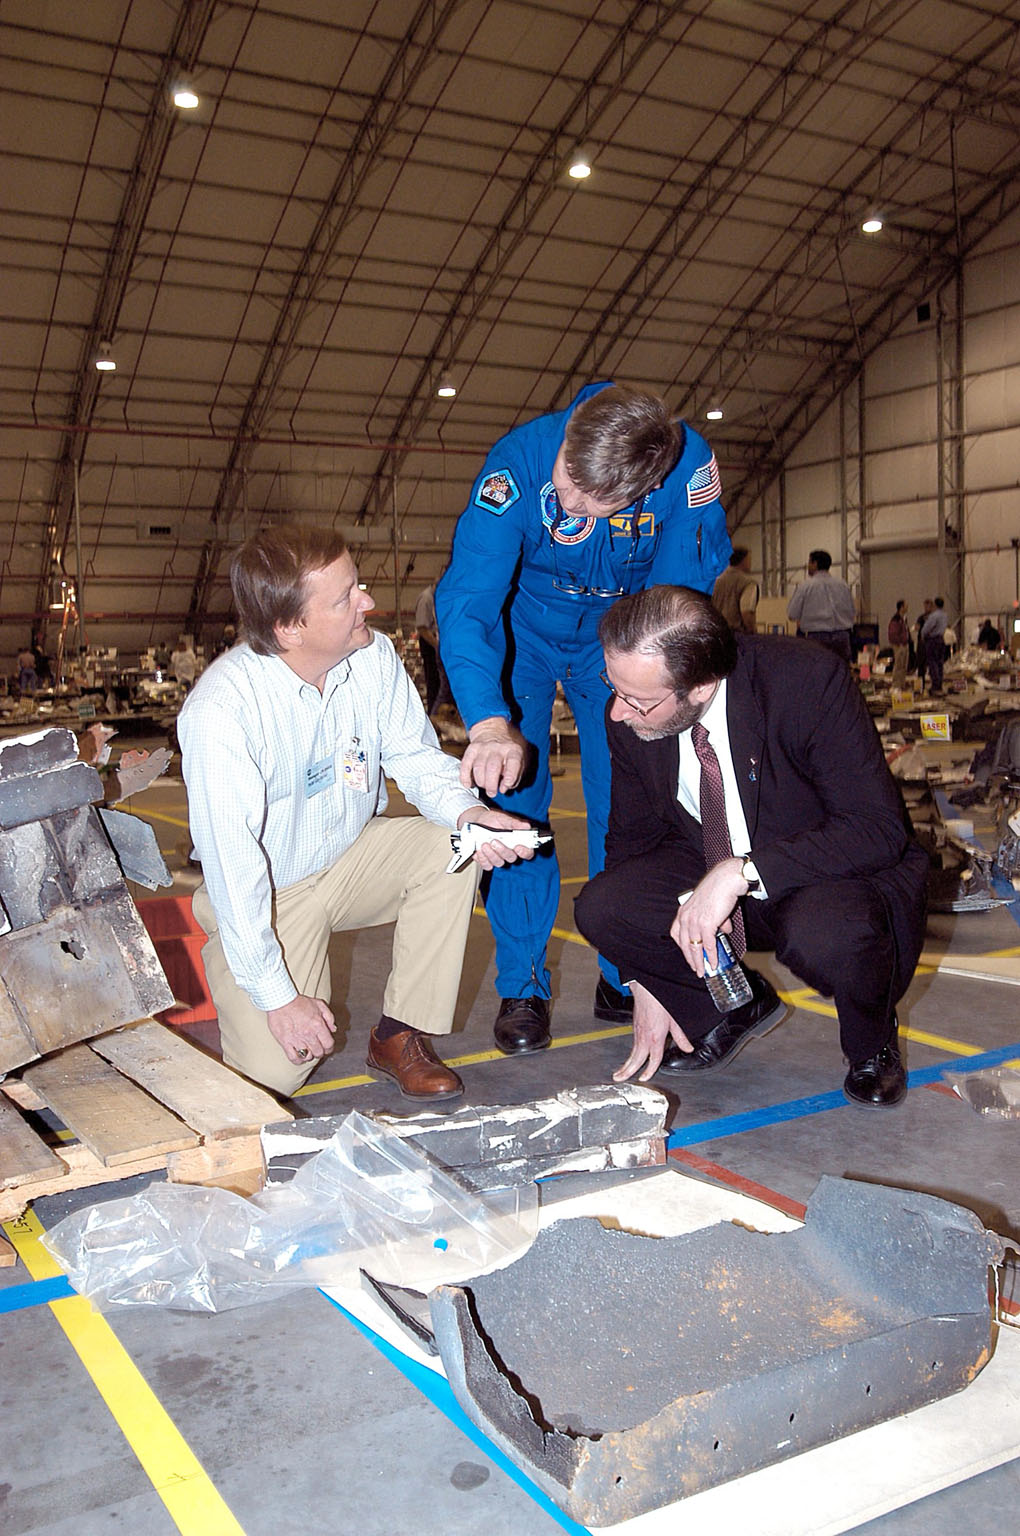 KENNEDY SPACE CENTER, FLA. - In the RLV Hangar at KSC, Shuttle Launch Director Mike Leinbach (left) shows some of the debris from Space Shuttle Columbia to former payload specialist Dr. Roger Crouch (center) and NASA Chief of Staff and White House liaison Courtney Stadd. The search of more than 500,000 acres of primary recovery area for Columbia material has passed the halfway mark. To date about 28 percent of Columbia, by weight, has been delivered to the hangar.